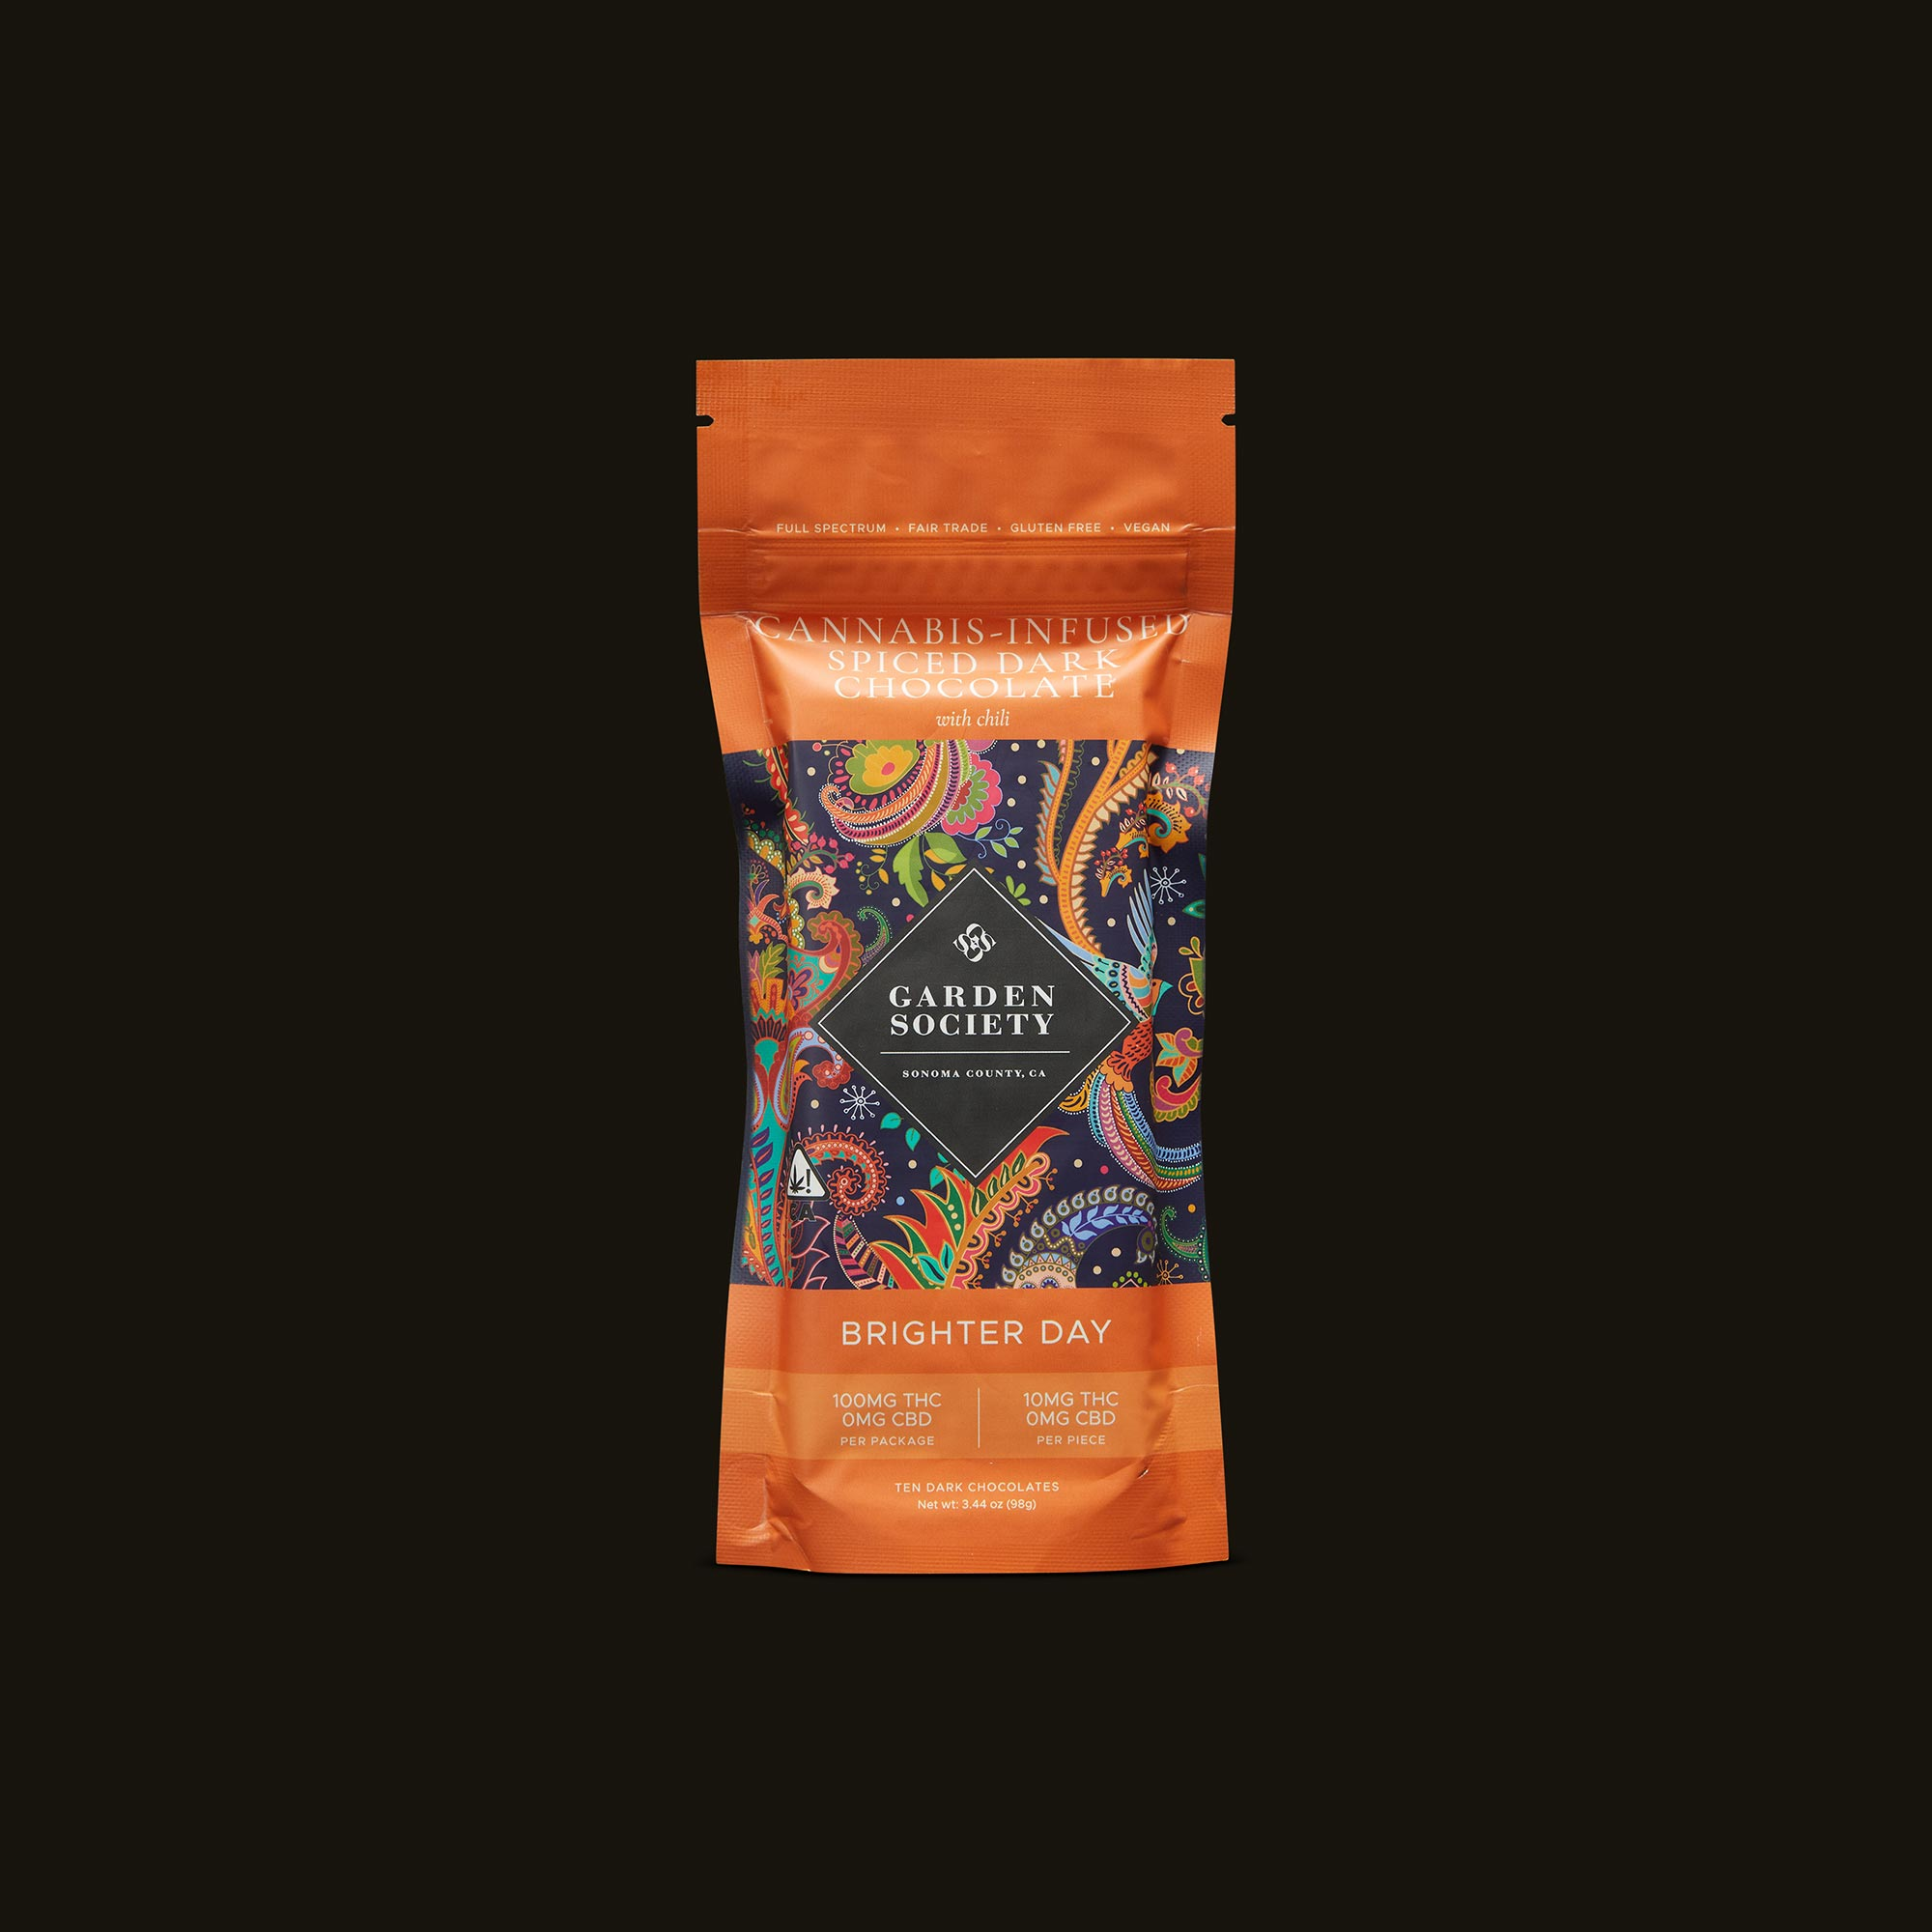 Garden Society Spiced Dark Chocolate with Chili Front Packaging